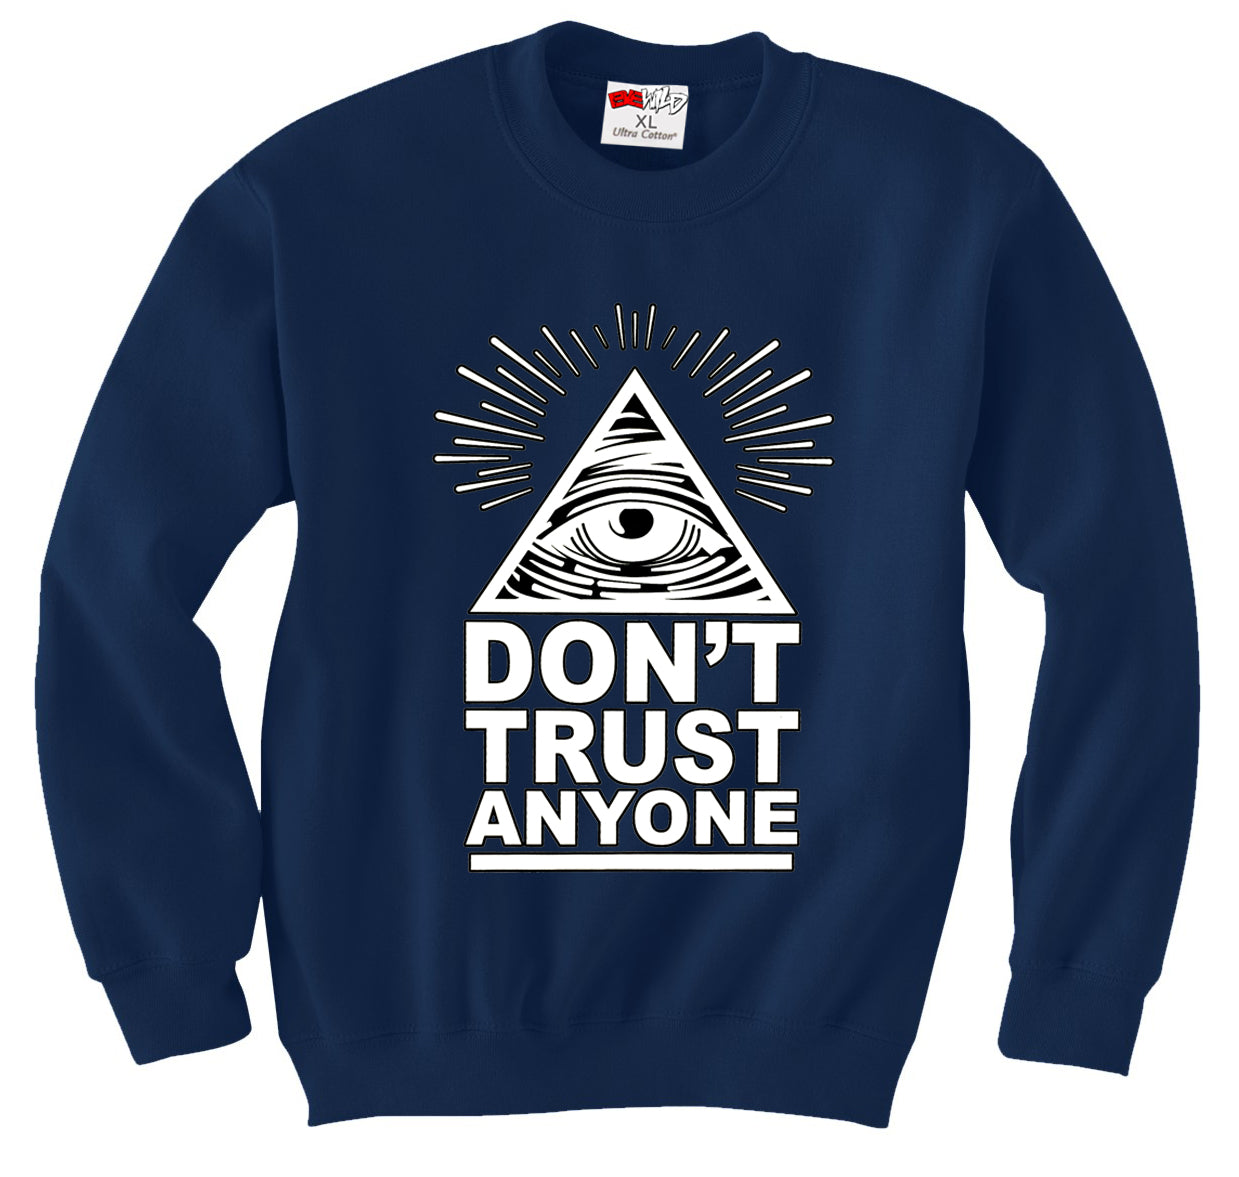 Don't Trust Anyone Crew Neck Sweatshirt